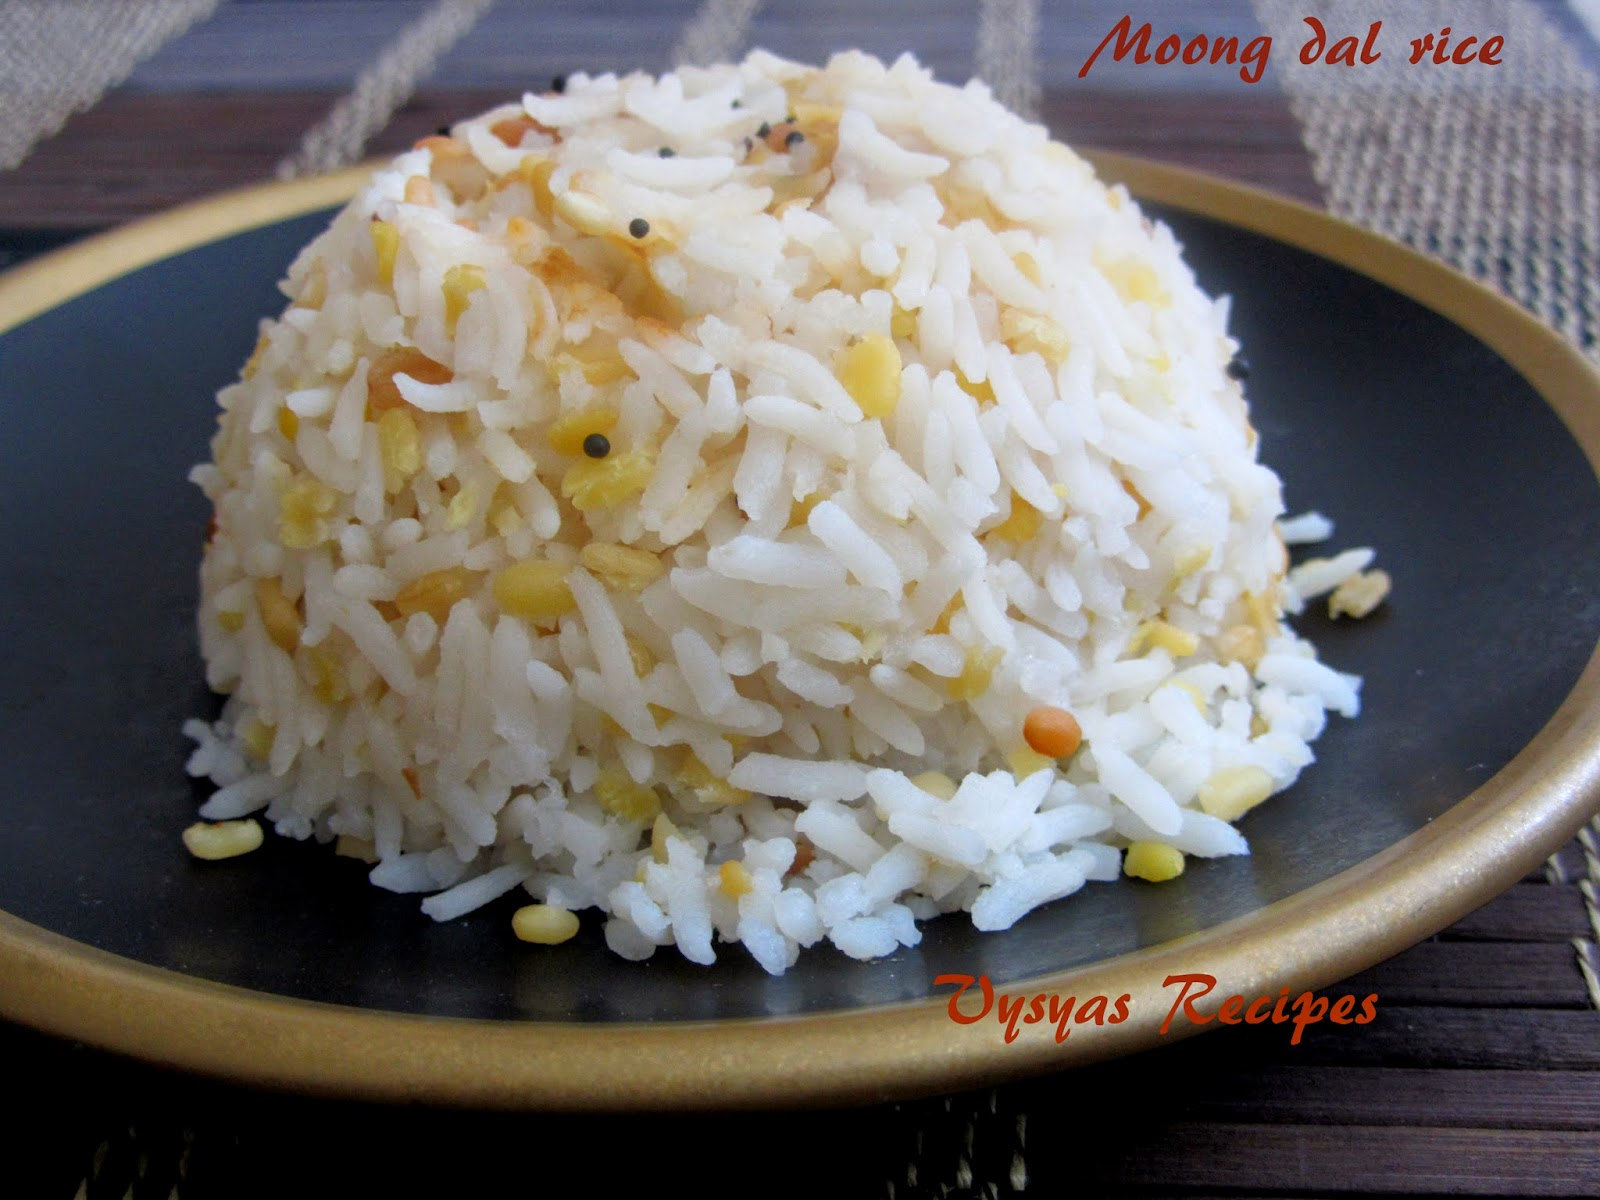 Moongdal rice